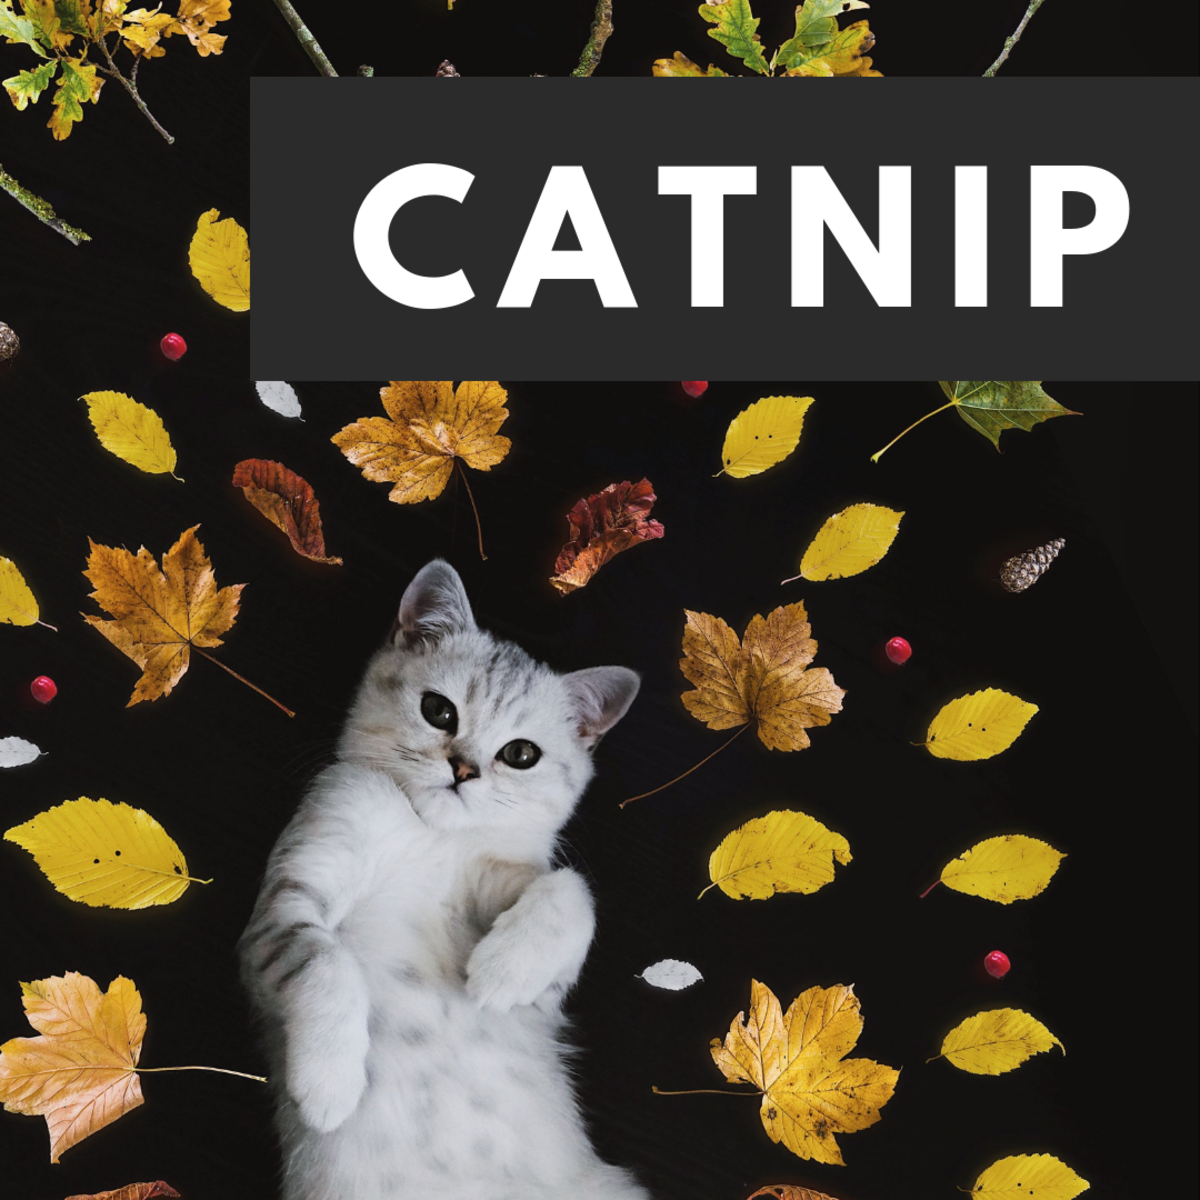 How Does Catnip Work?